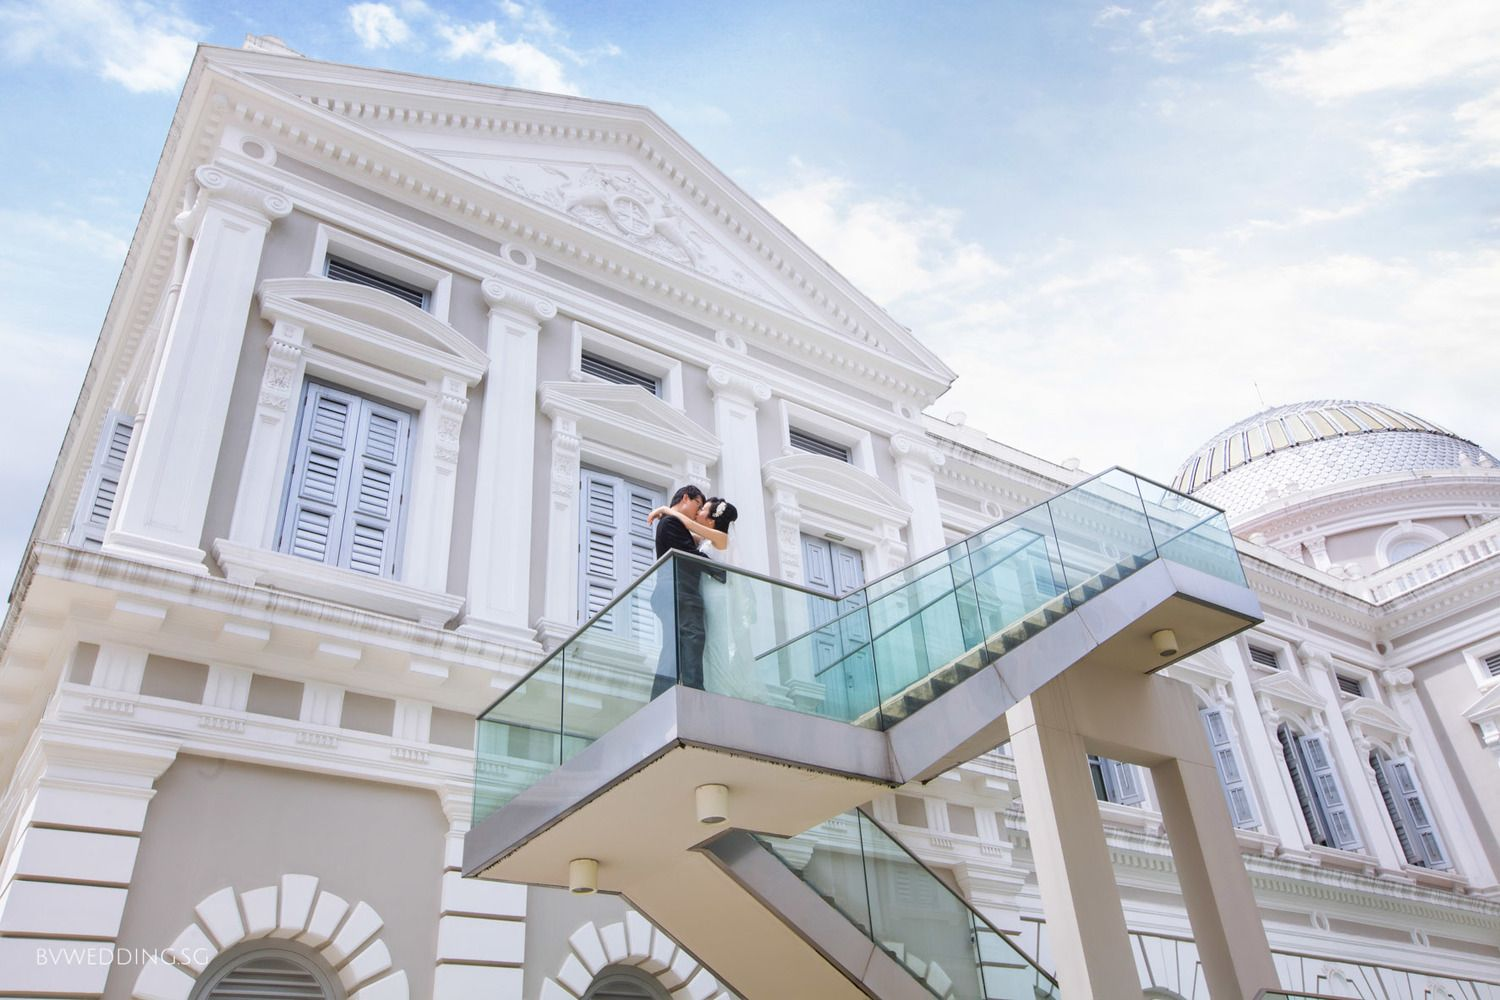 pre wedding photoshoot location malaysia%0A Prewedding photoshoot at national museum outdoor